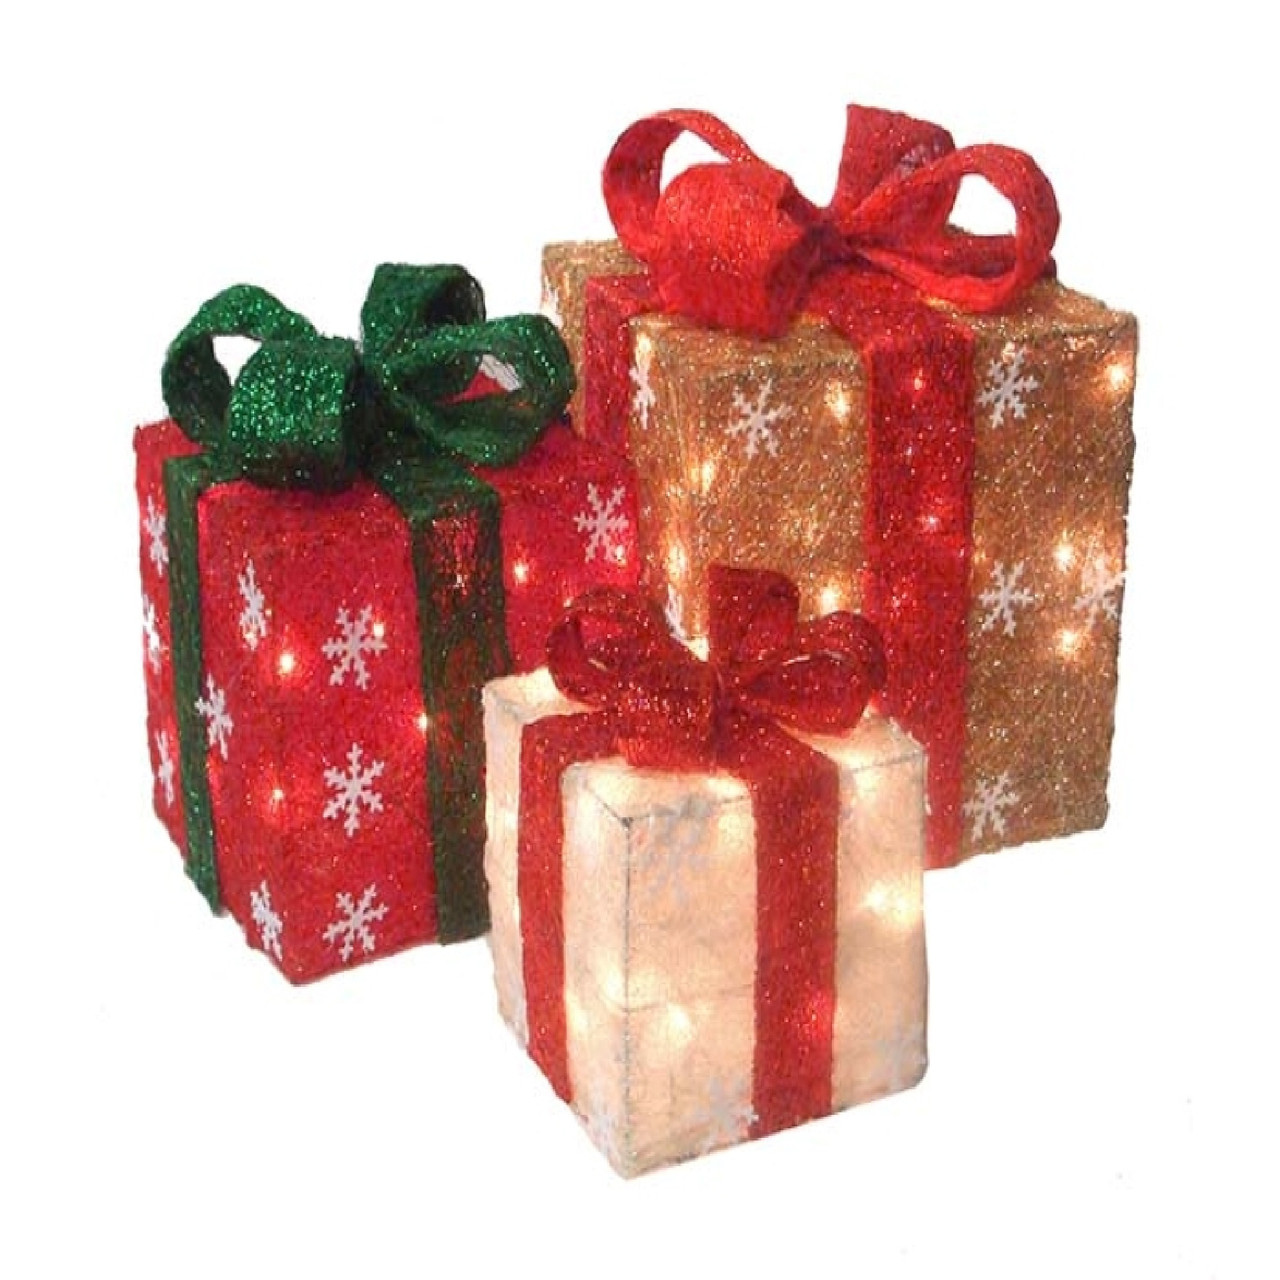 Lighted Christmas Boxes Decoration.Set Of 3 Red Gold Cream Sisal Gift Boxes Lighted Christmas Outdoor Decorations 33374627